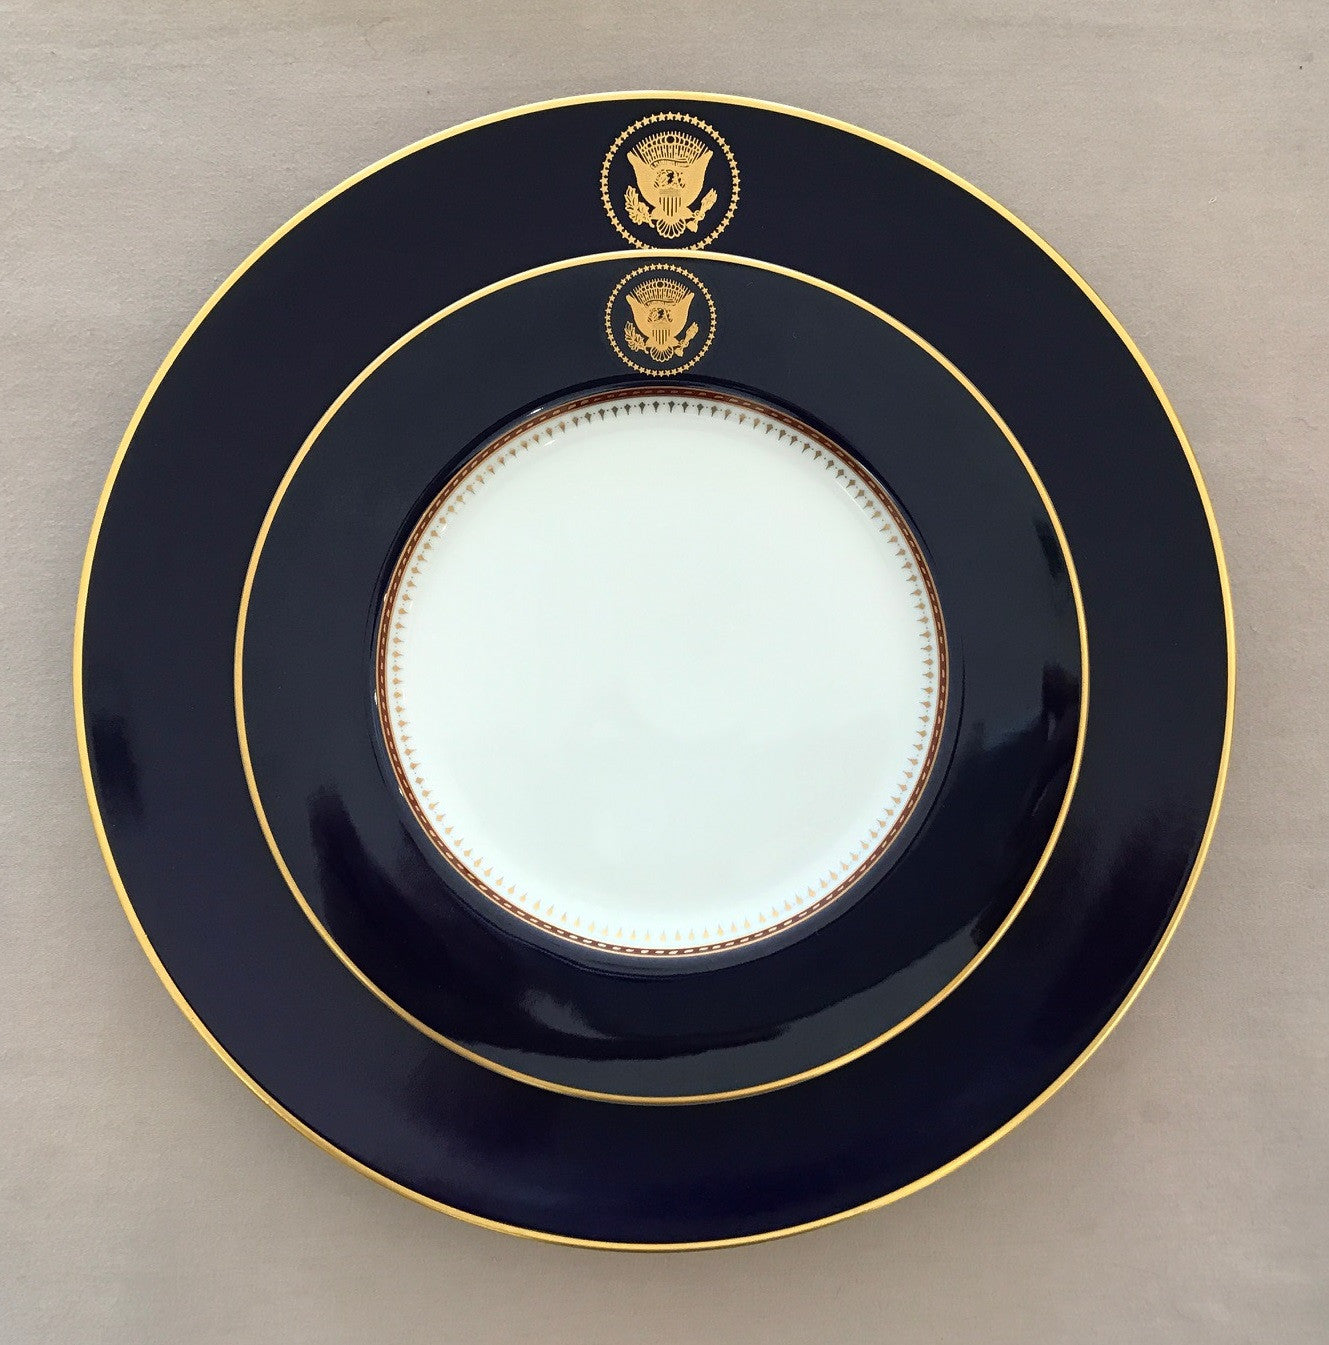 Ronald Reagan White House Presidential China